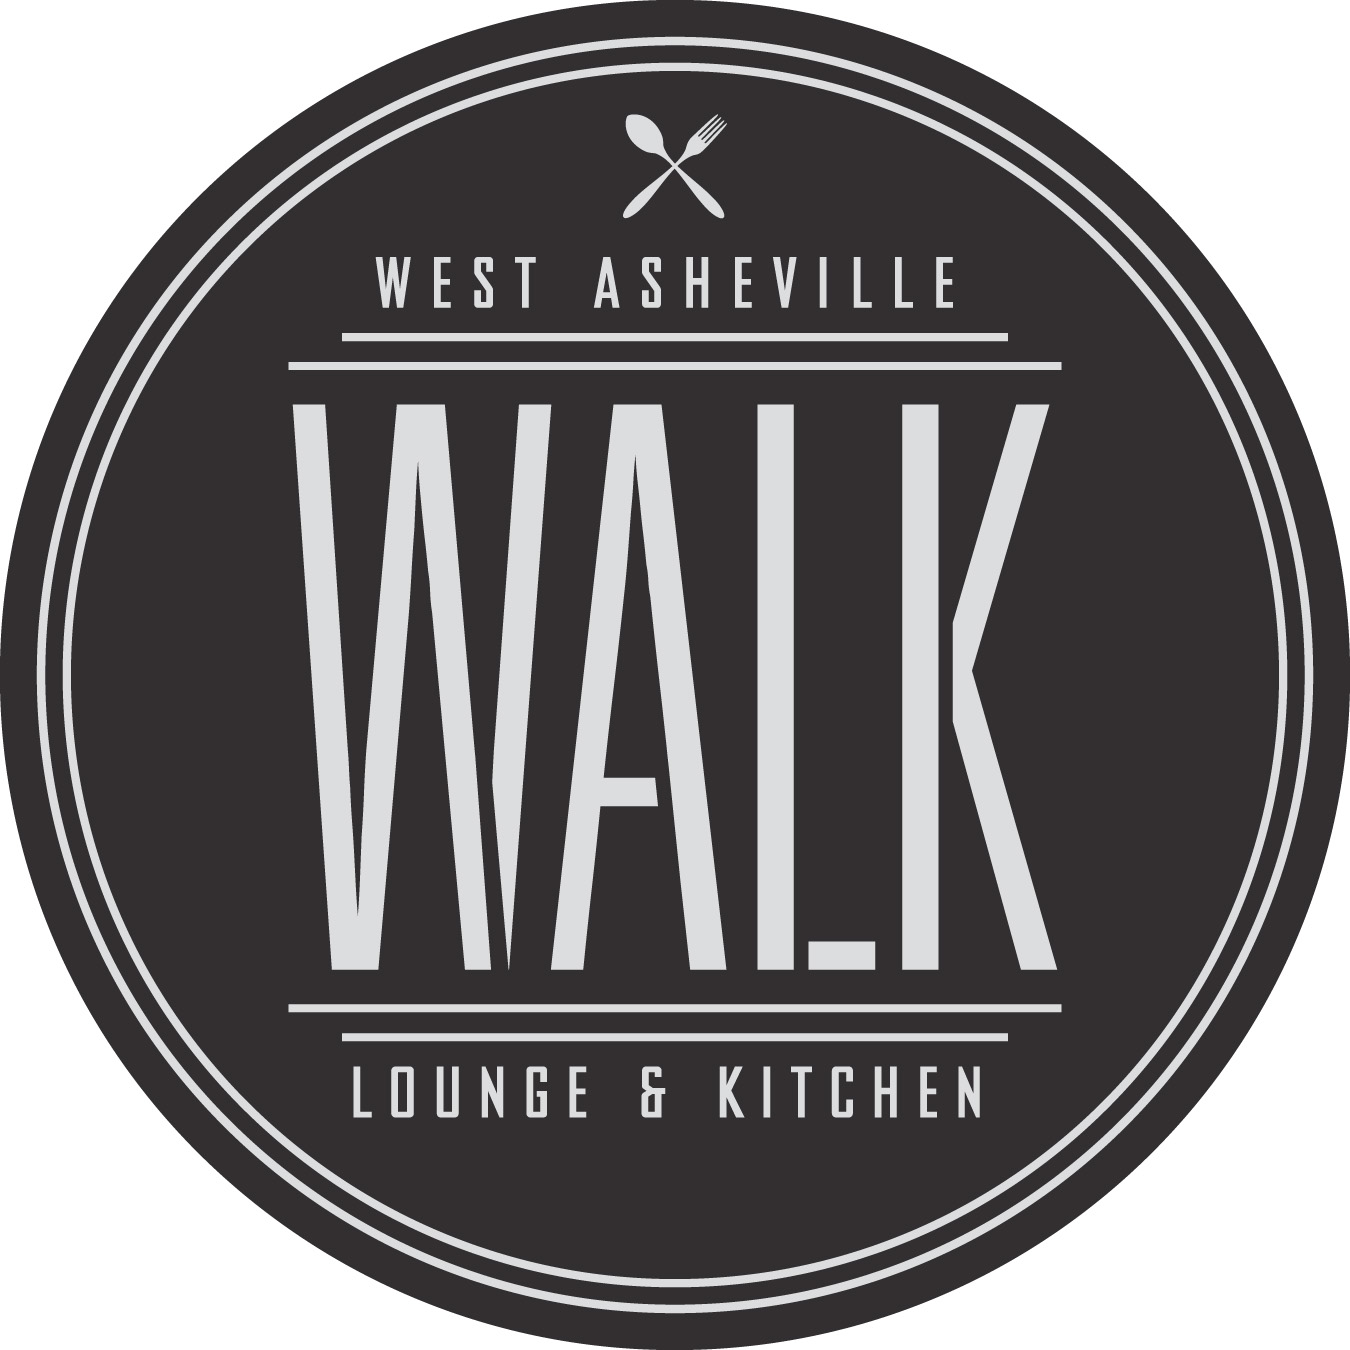 Walk (West Asheville Lounge & Kitchen)